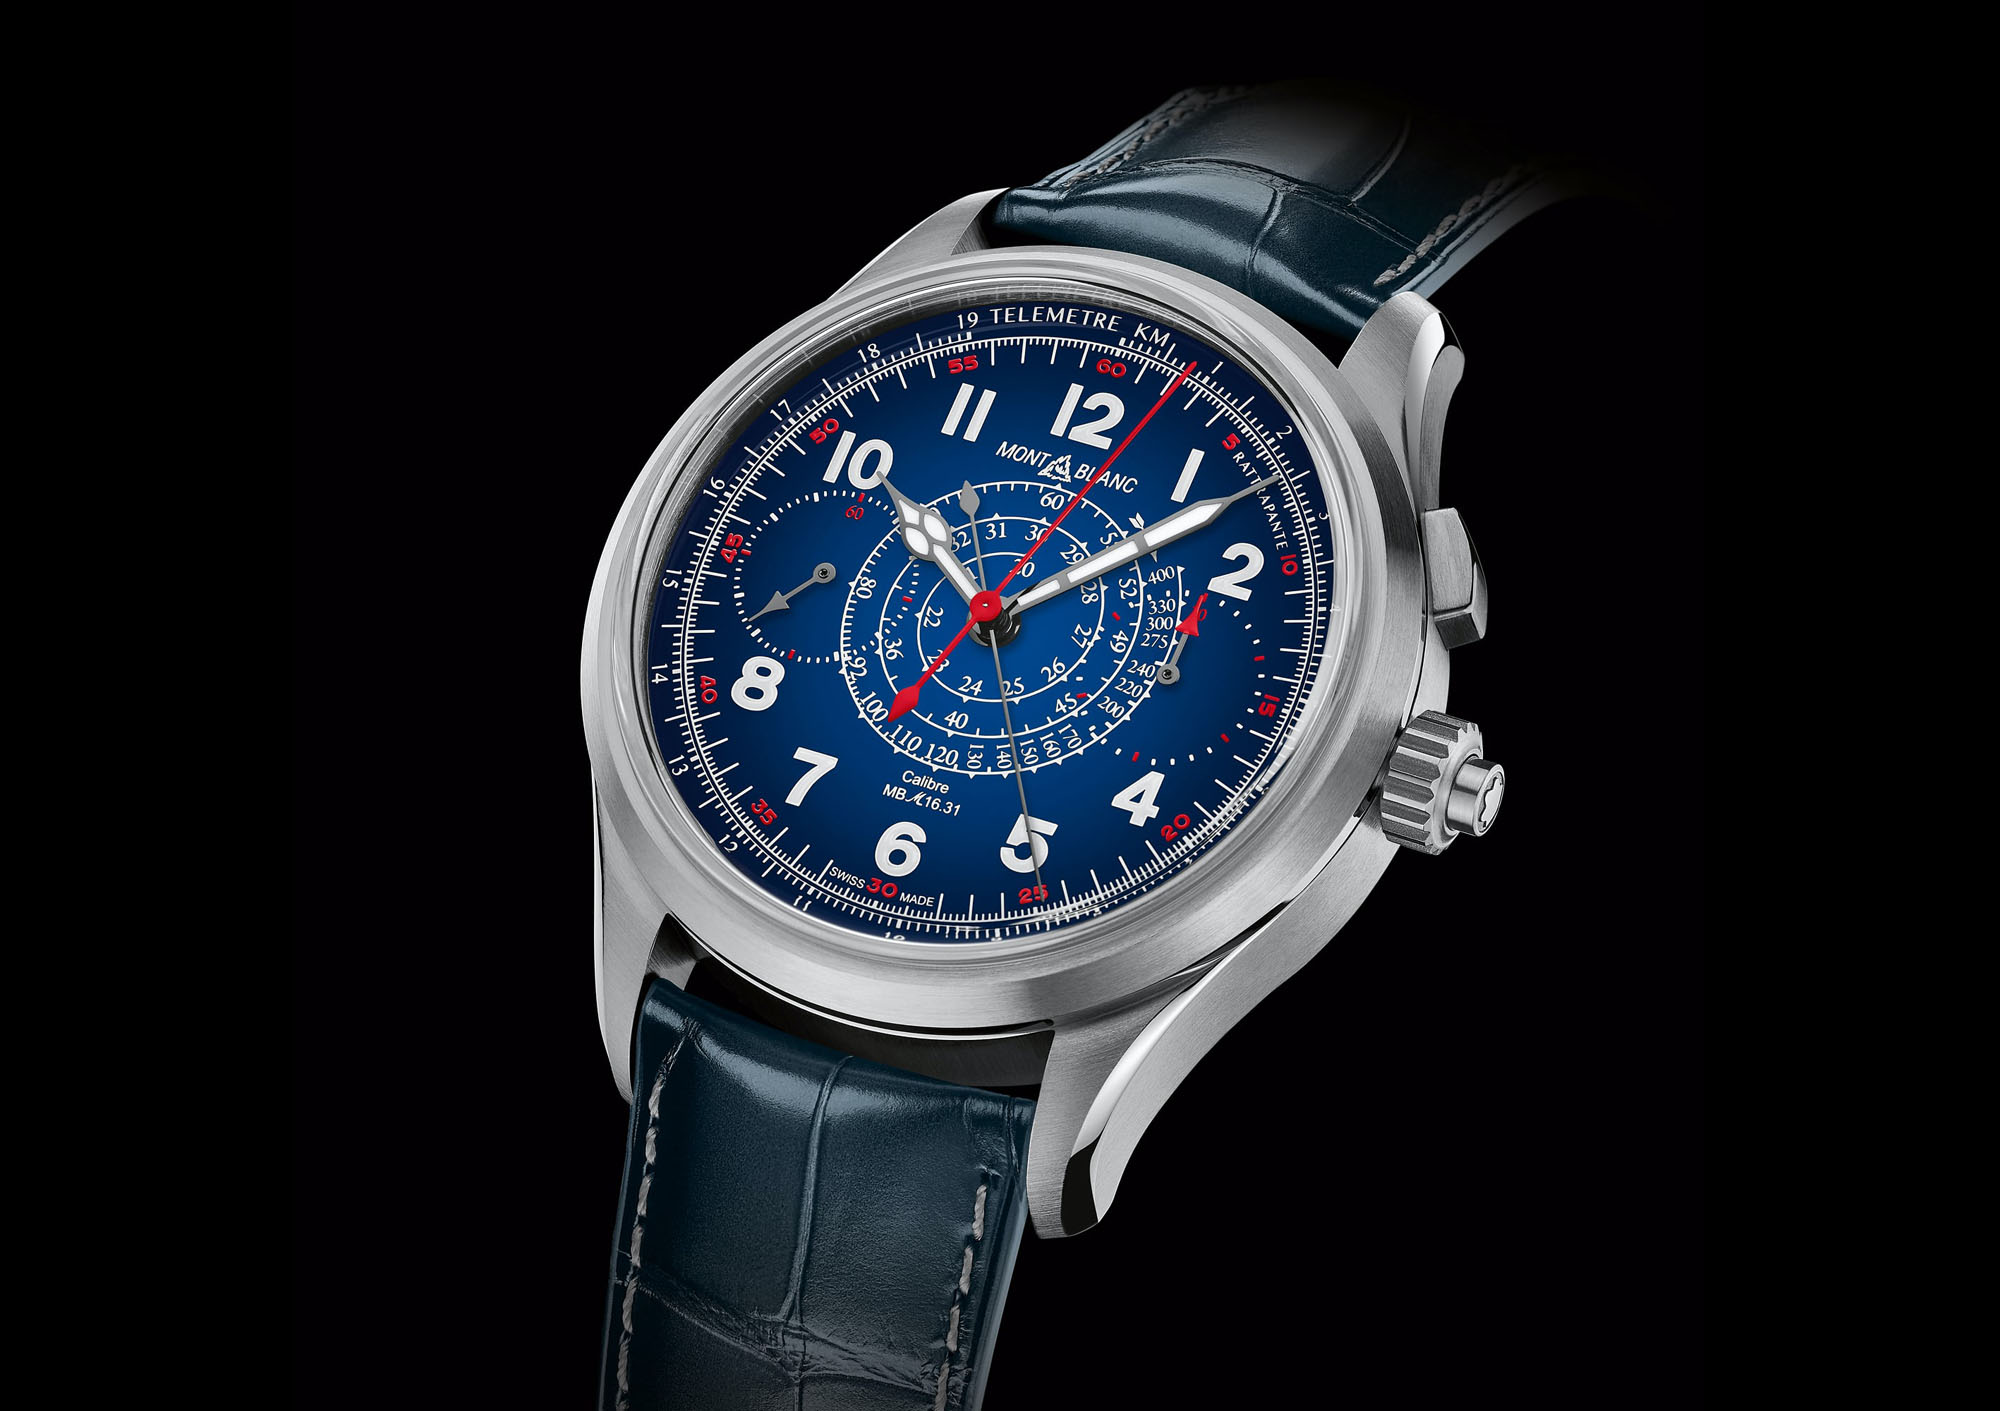 Montblanc 1858 Split Second Chronograph Only Watch 2019